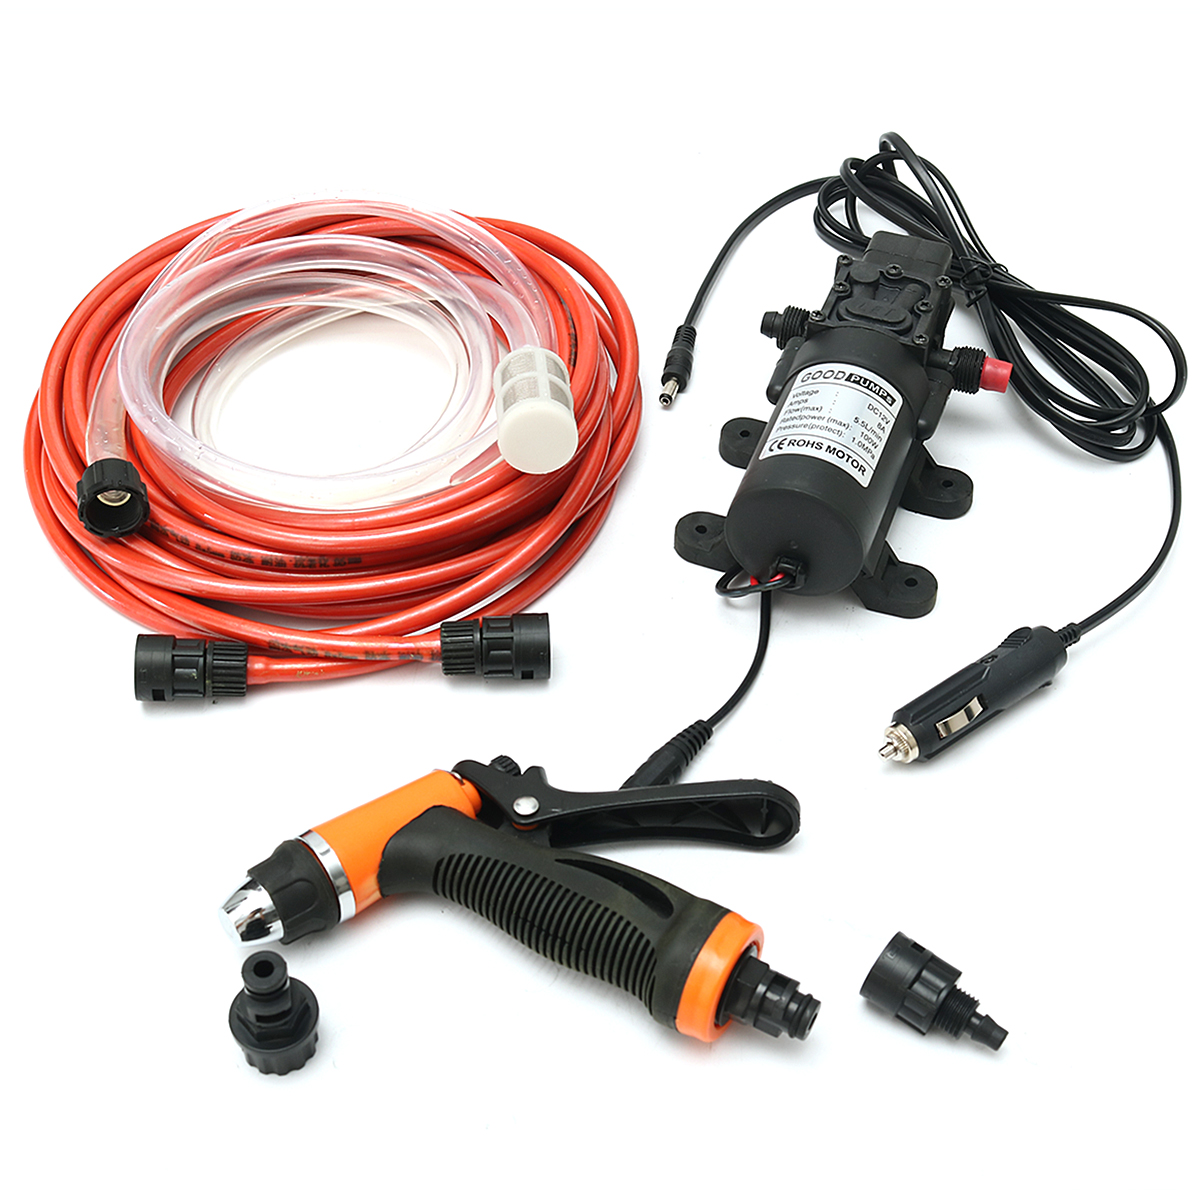 New Arrival High Pressure 12V Portable 100W 160PSI Car Electric Washer Washing Machine Cigarette Lighter Water Pump Kit portable water pump cigarette lighter high pressure 12v spray gun car cleaner self suction electric car washer